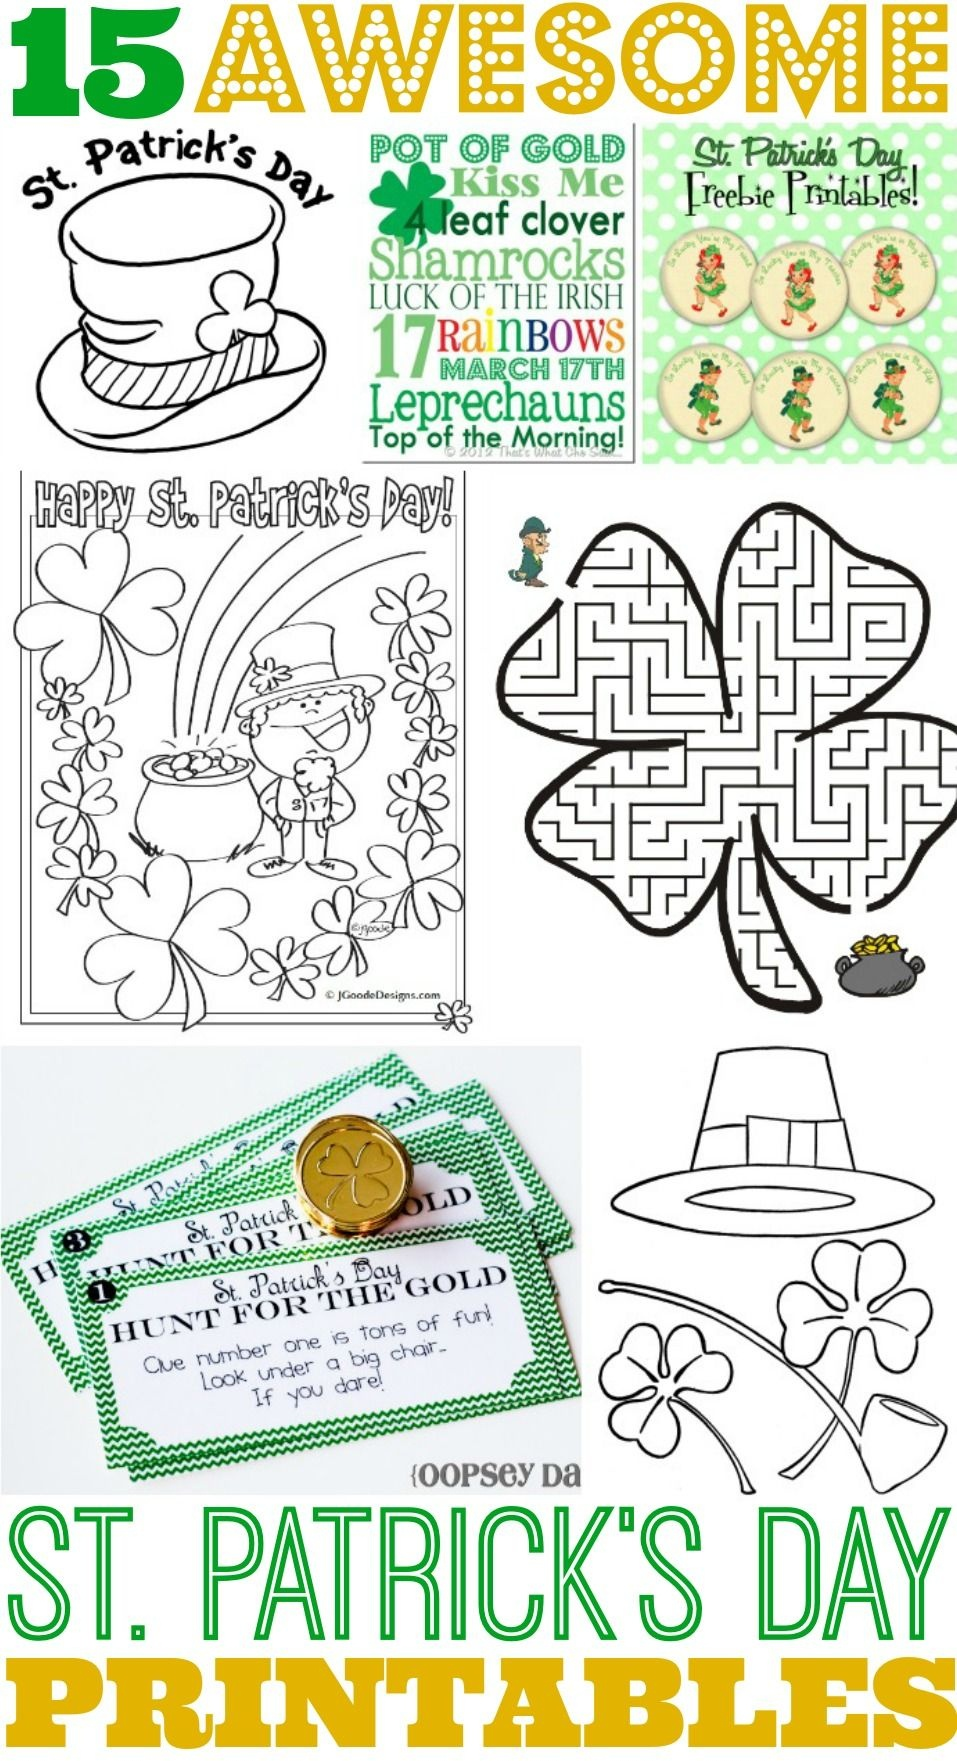 15 Awesome St. Patrick's Day Free Printables For Kids | Saint - Free Printable St Patrick's Day Mazes